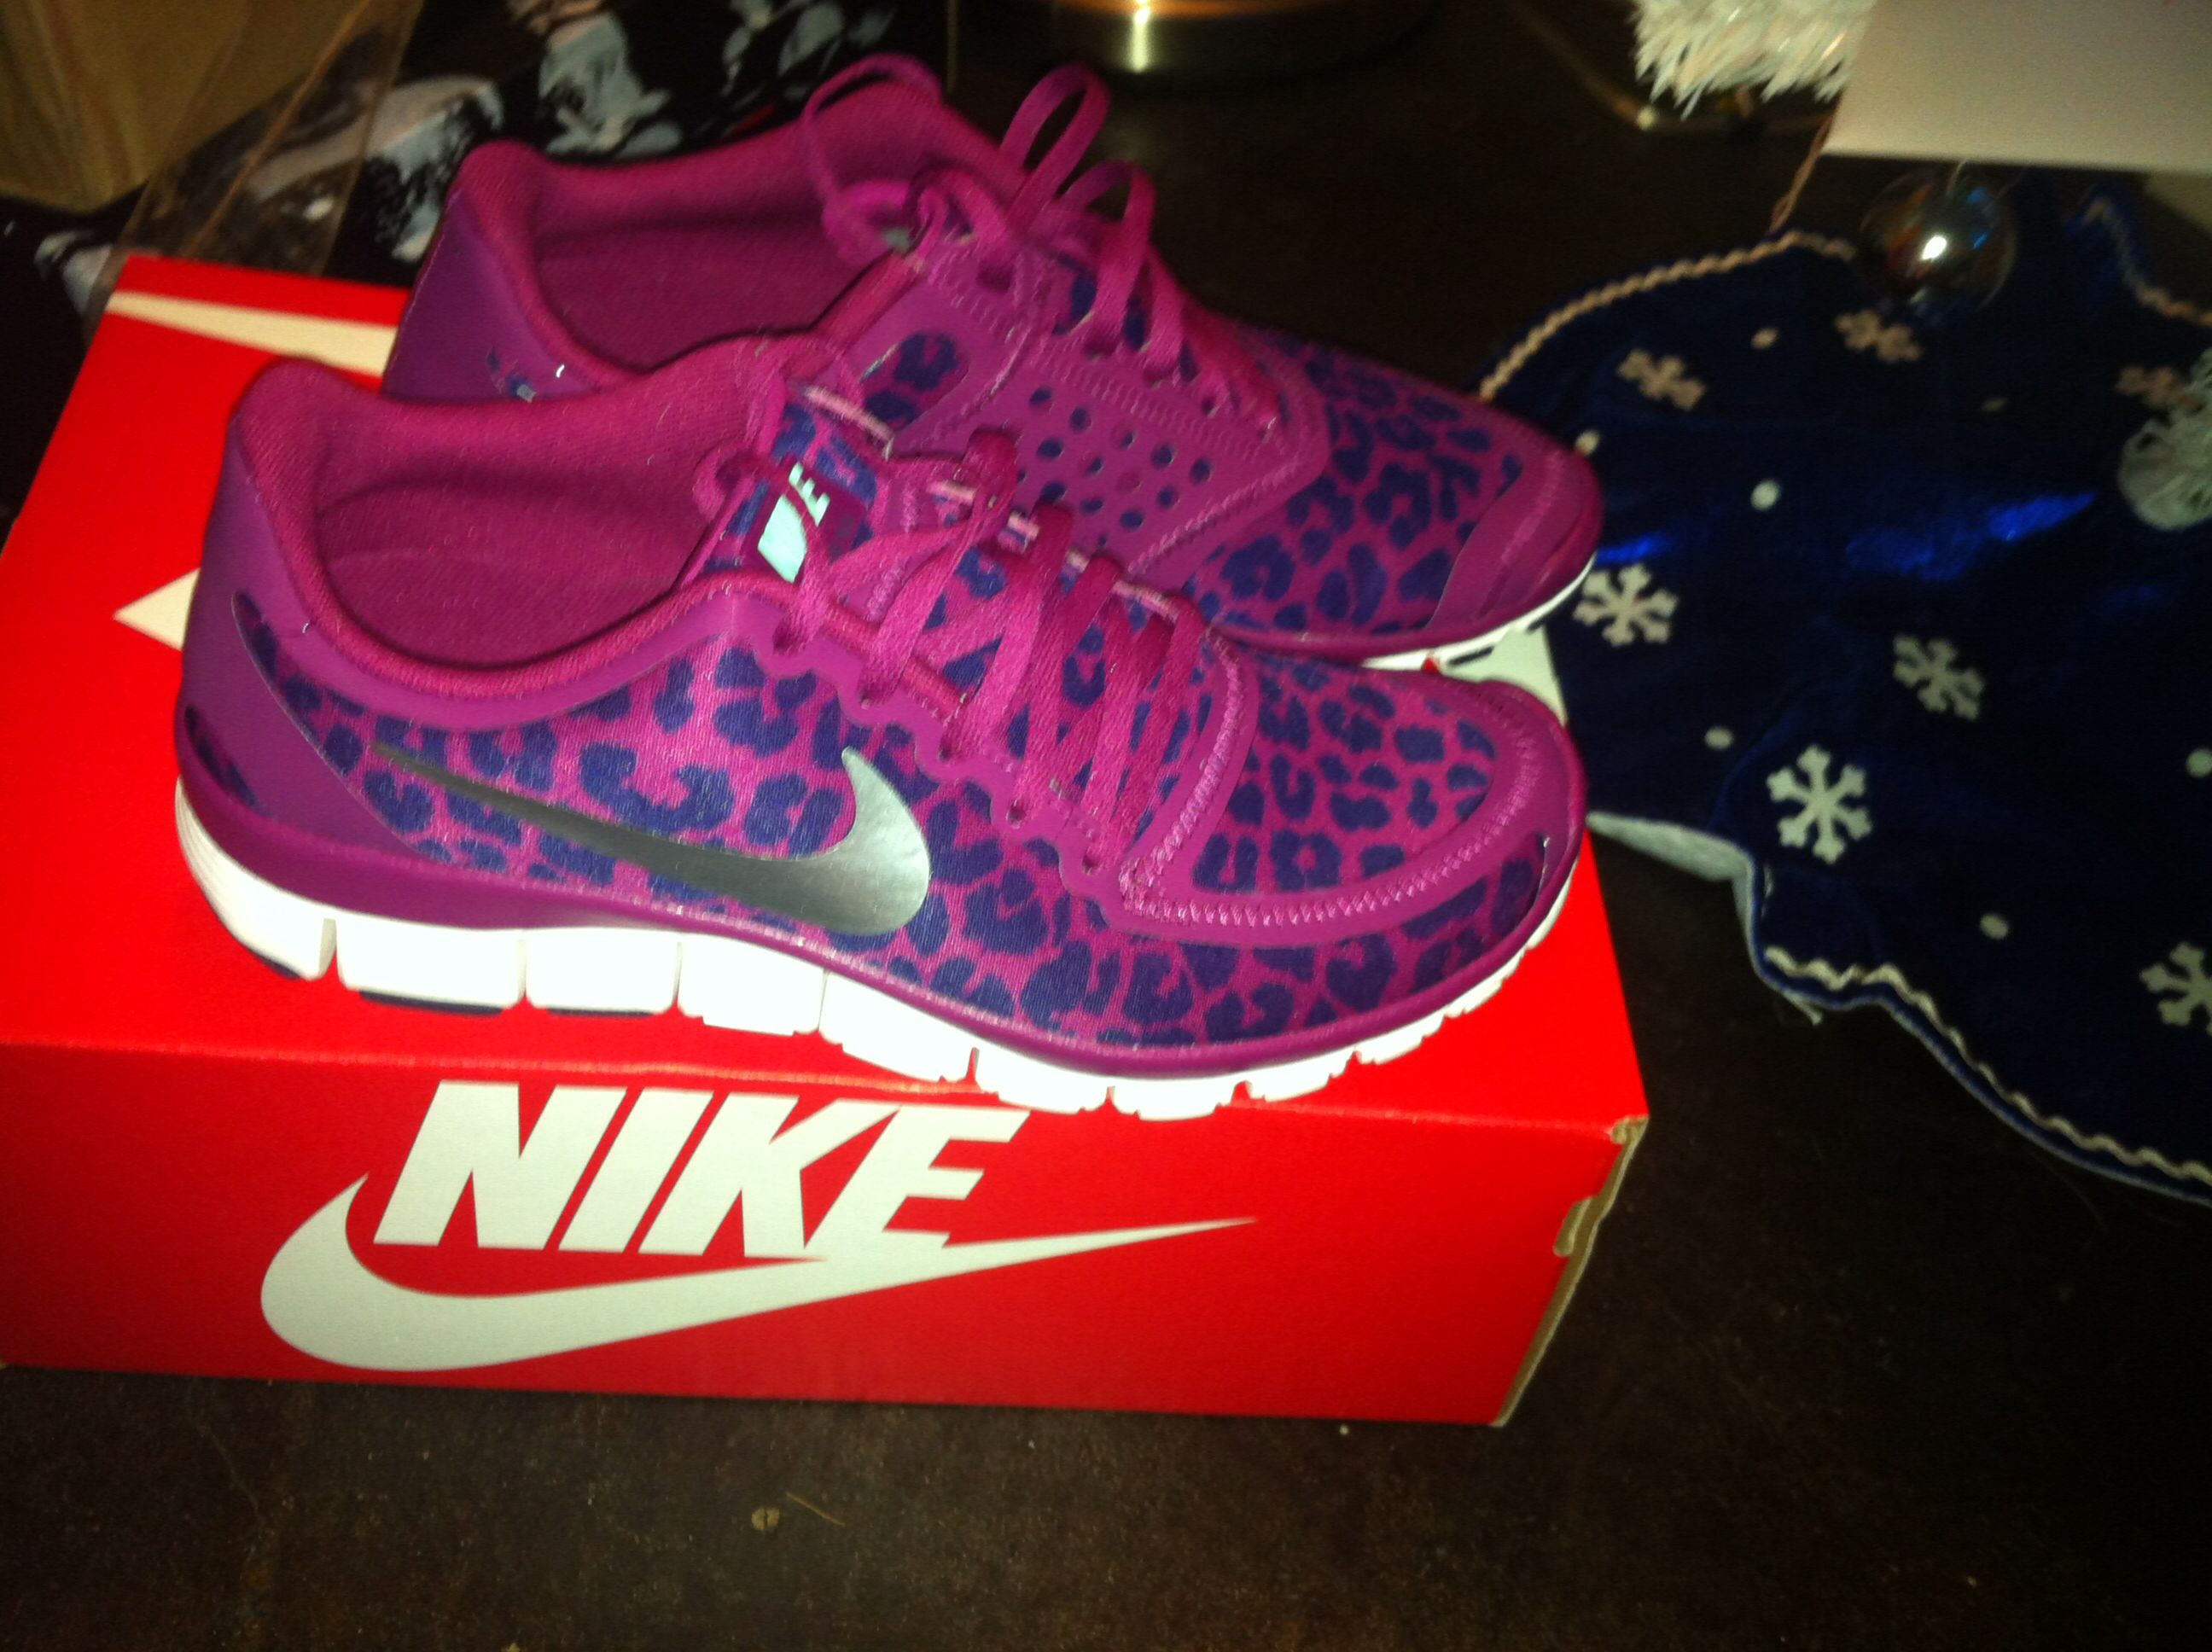 I could totally run faster if I had these! leopard nike running shoes